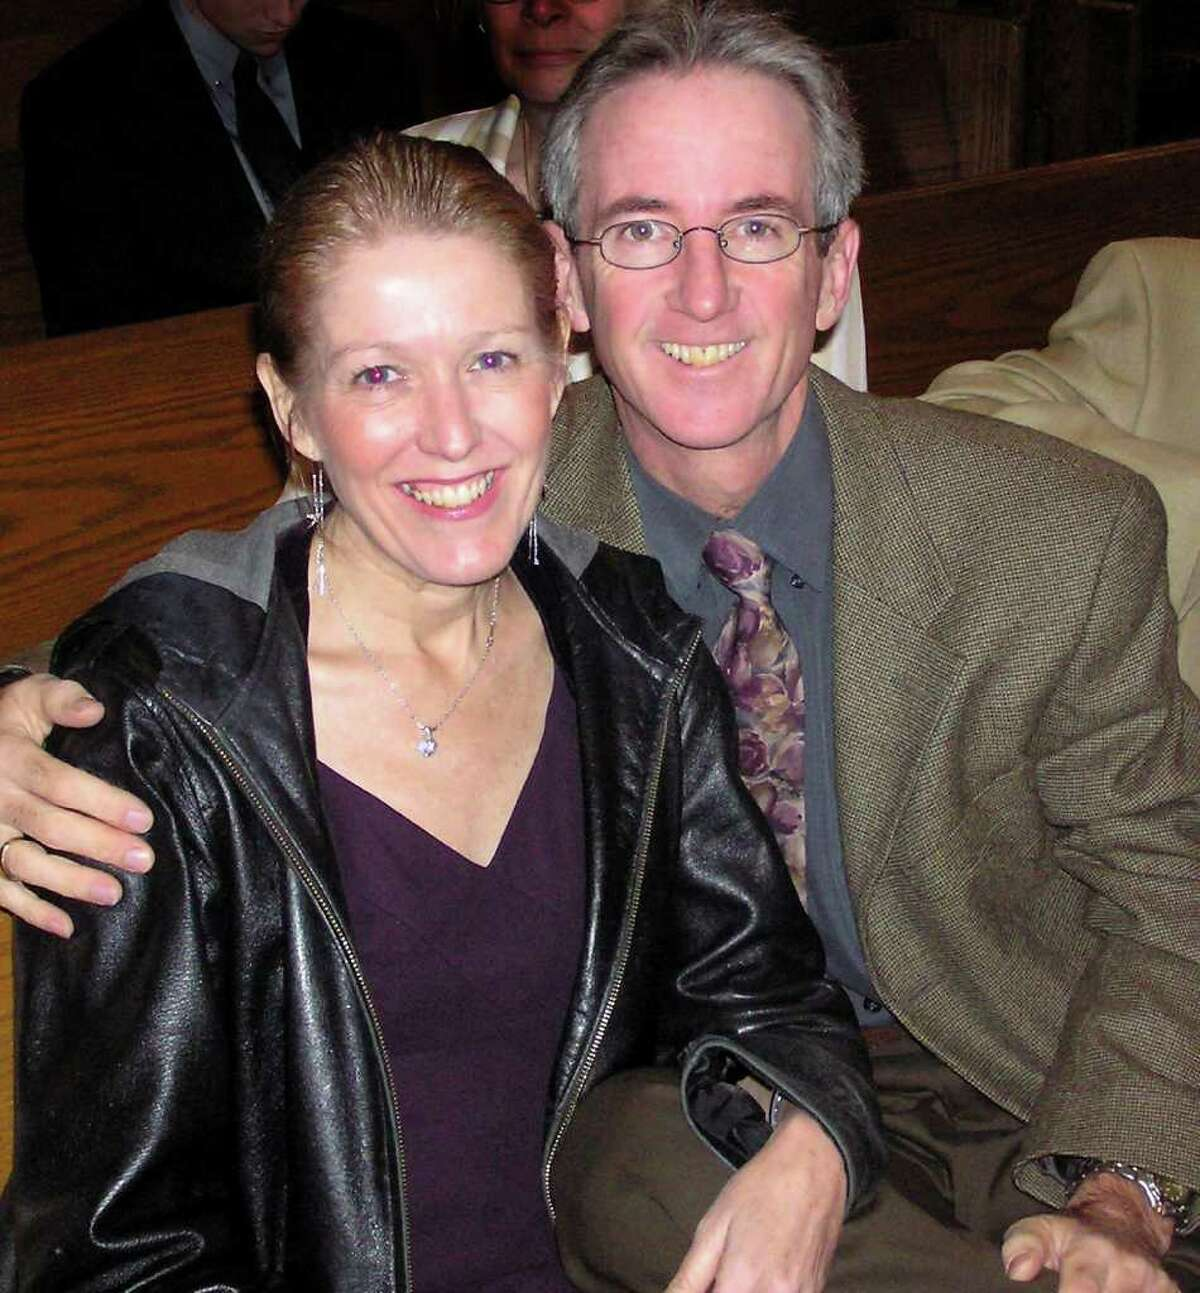 Kim and Tim Donnelly were murdered at their jewelery store in Fairfield, Conn. Wednesday Feb. 2, 2005.